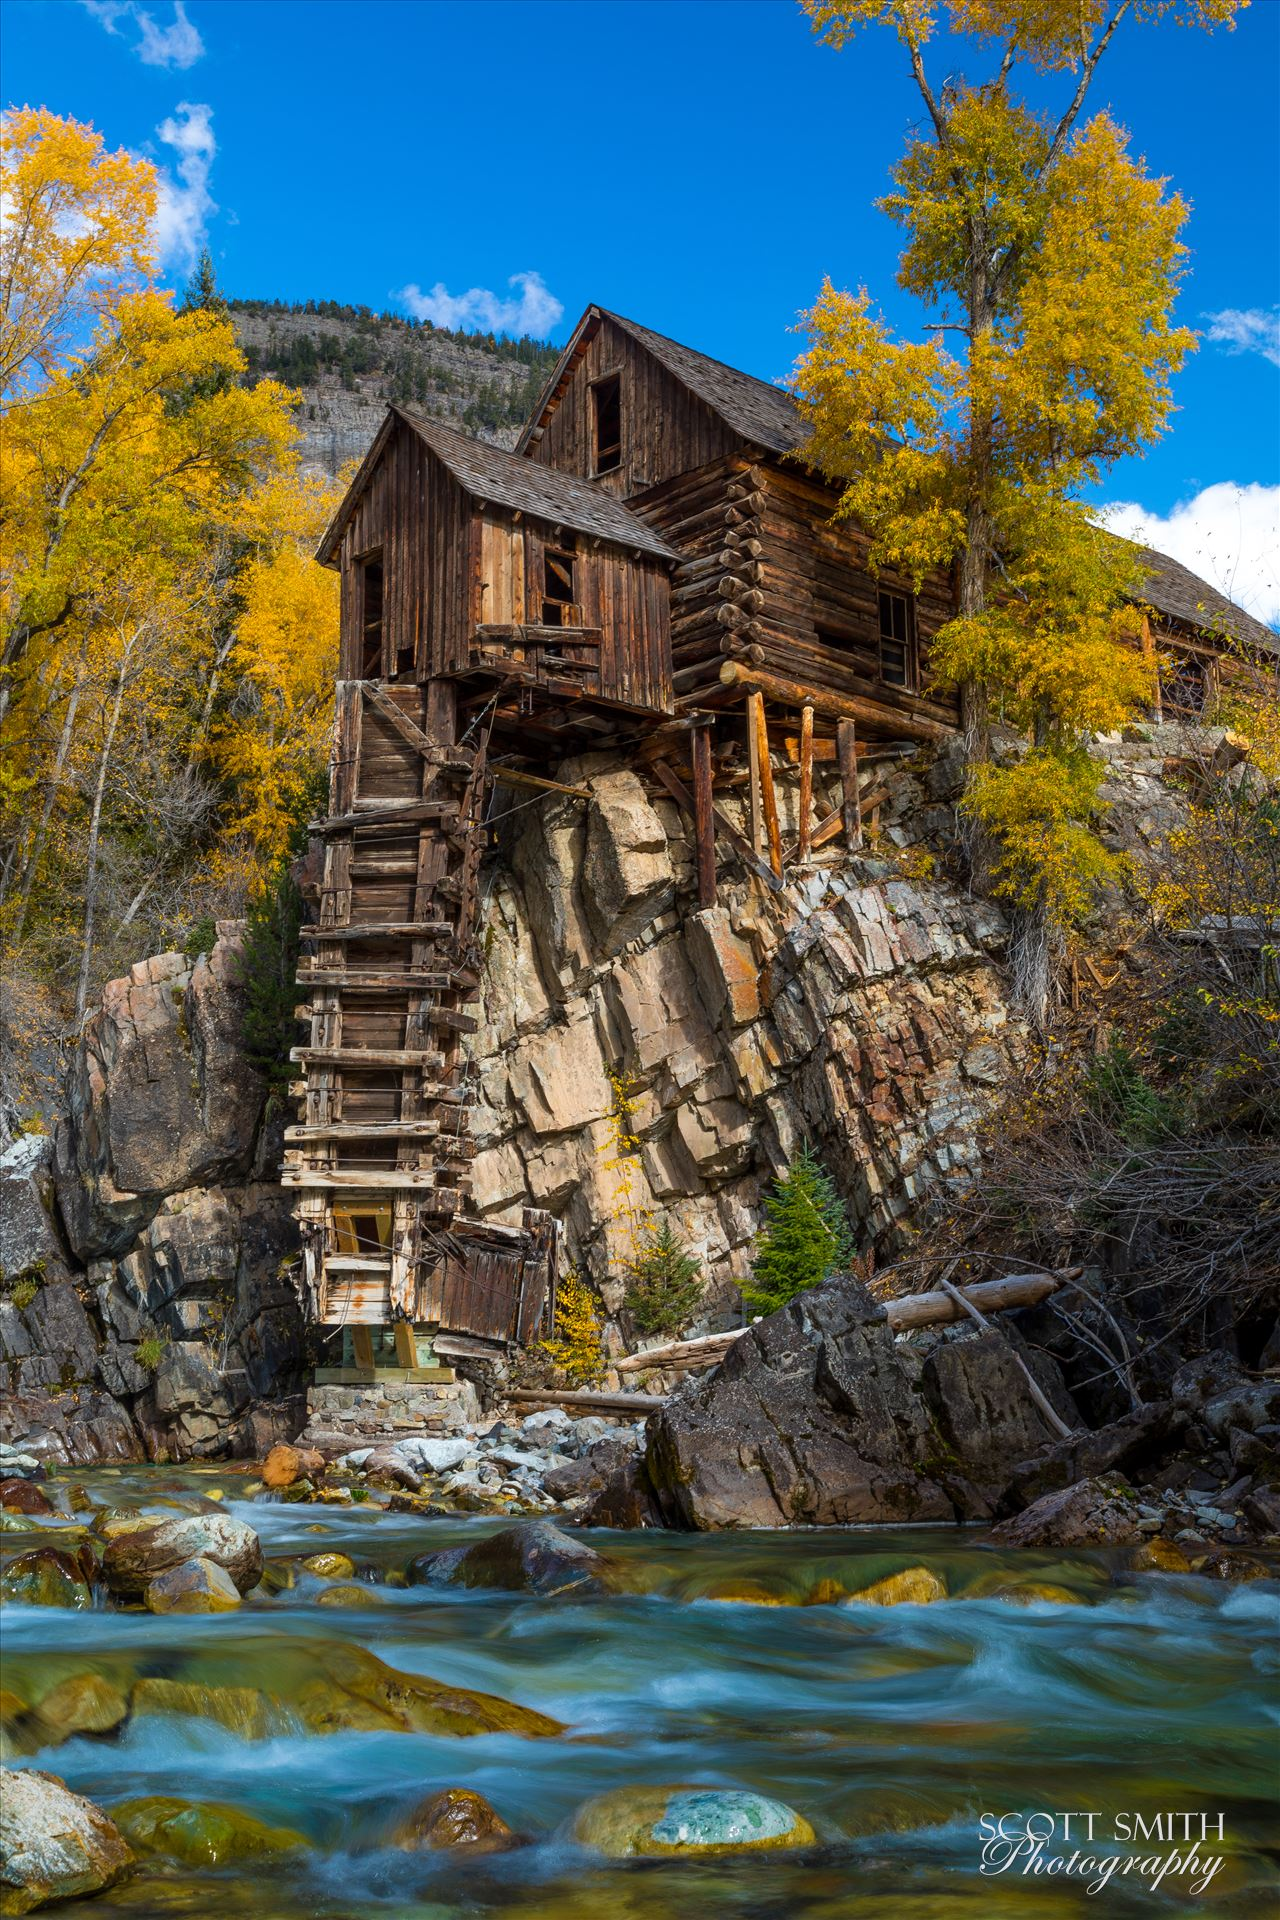 Crystal Mill No 4 The Crystal Mill, or the Old Mill is an 1892 wooden powerhouse located on an outcrop above the Crystal River in Crystal, Colorado by Scott Smith Photos